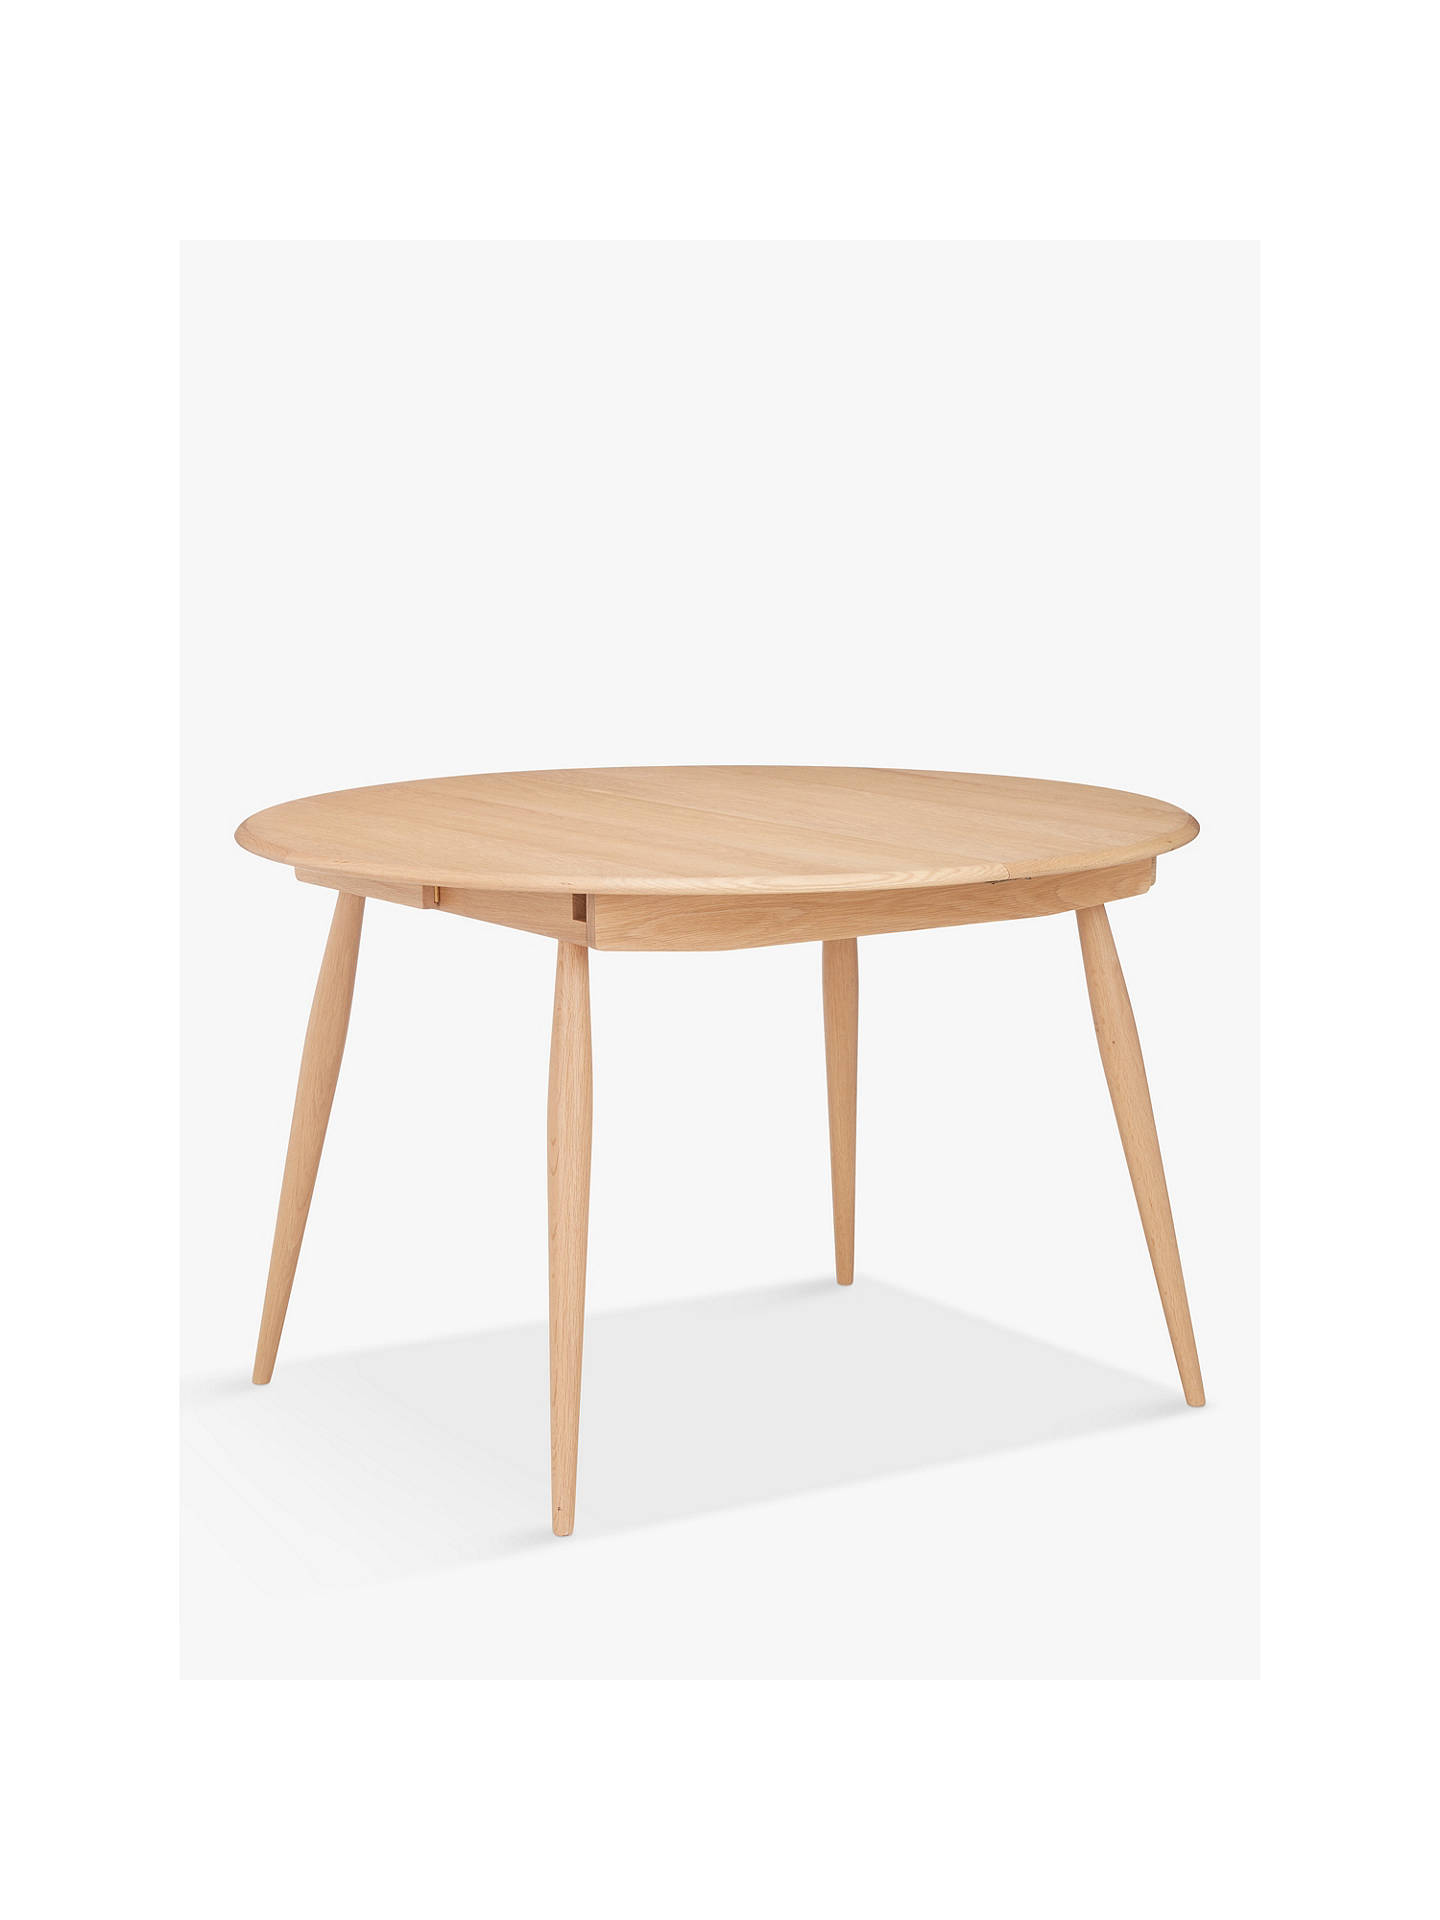 Ercol For John Lewis Shalstone 4 6 Seater Extending Round Dining Table Oak At John Lewis Partners